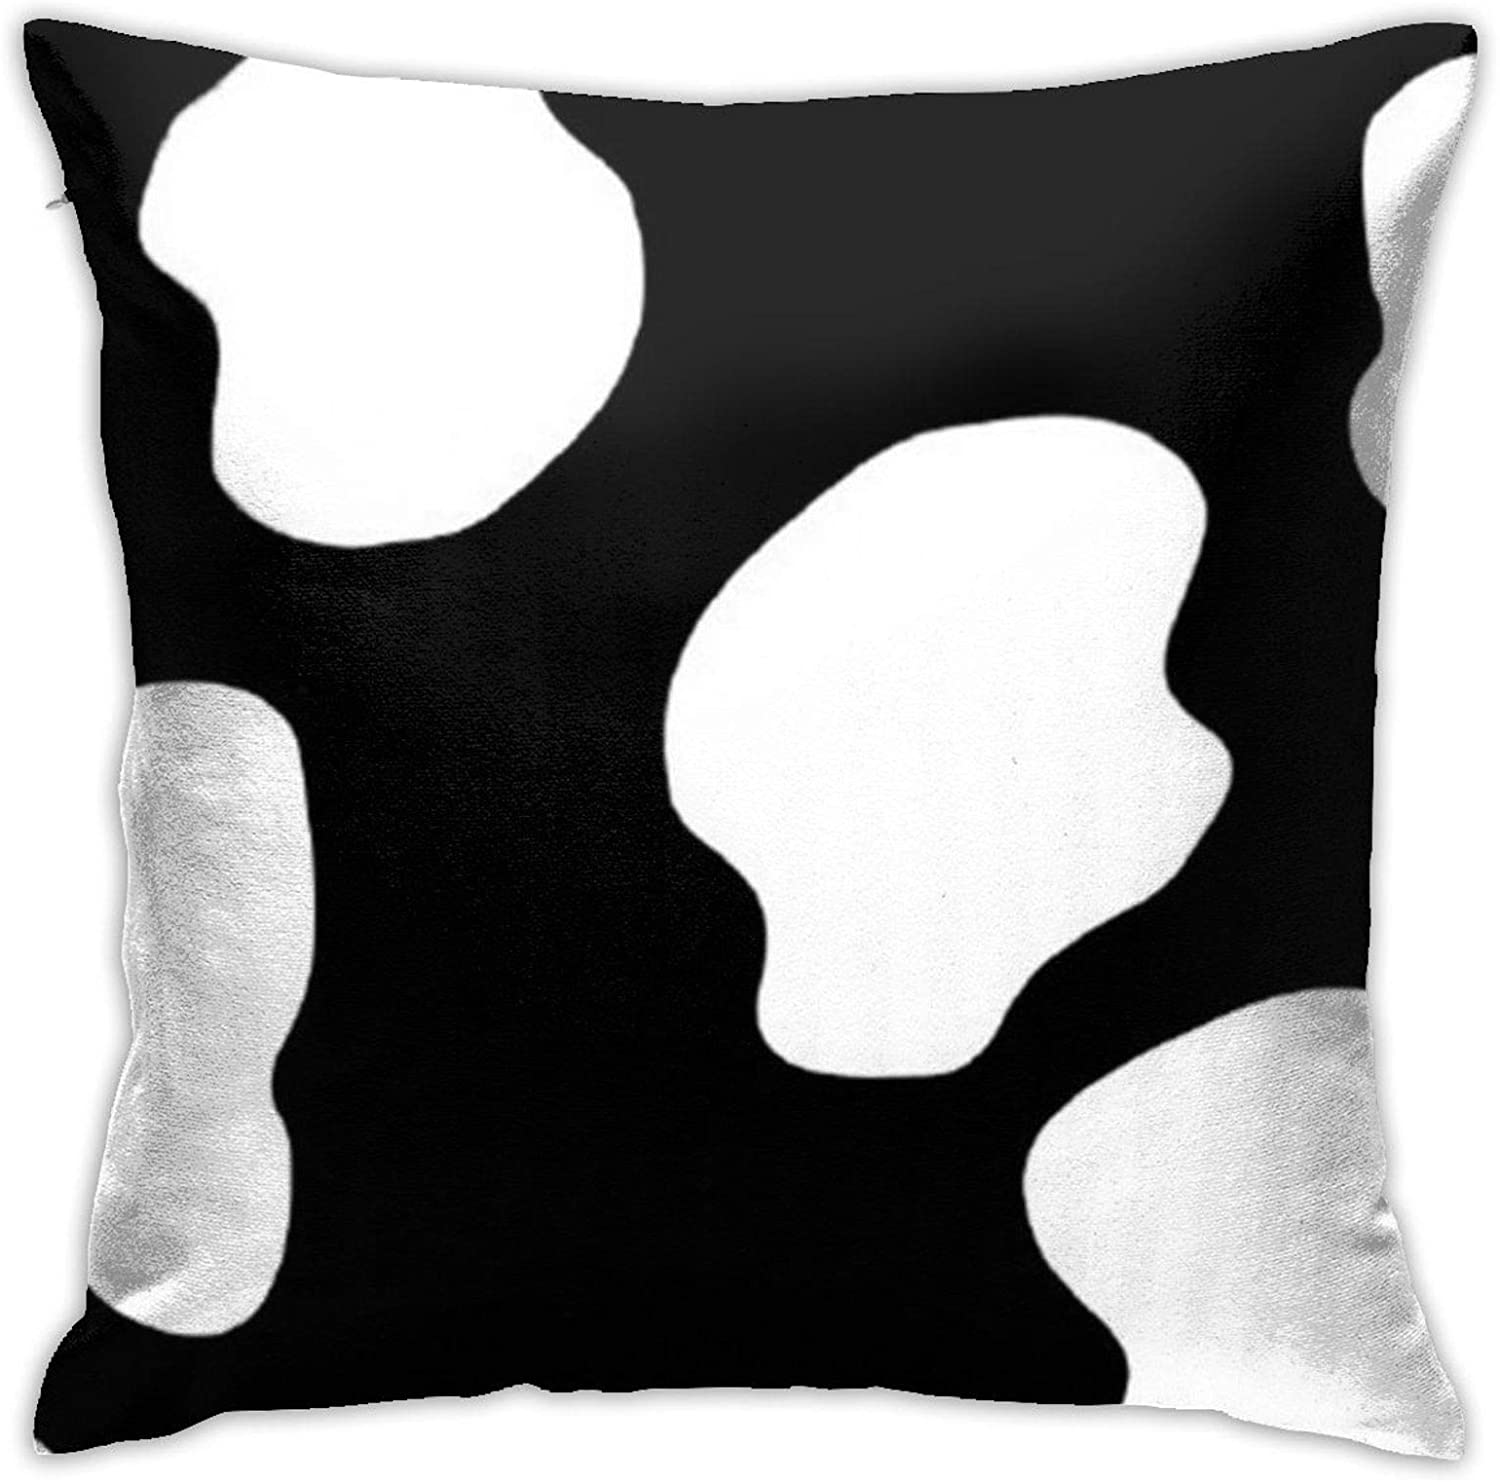 "Cow Black and White Pattern Throw Pillow Covers, Pillow Case Cushion Cover for Sofa Couch Decor 18""x 18""Inch"